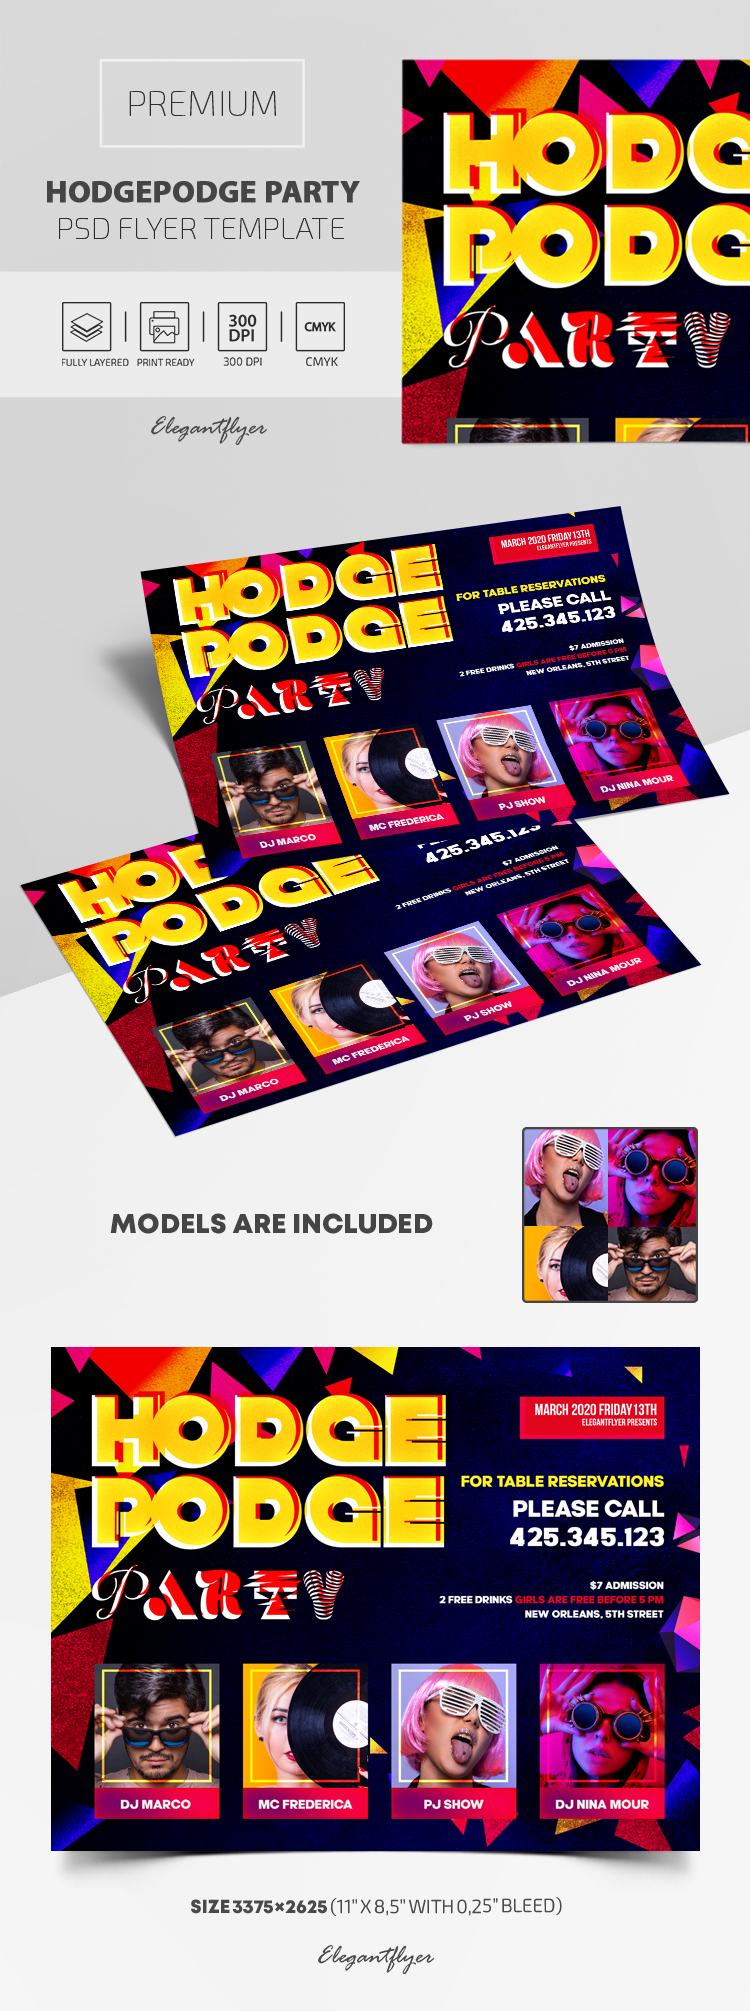 Hodgepodge Party – Premium PSD Flyer Template